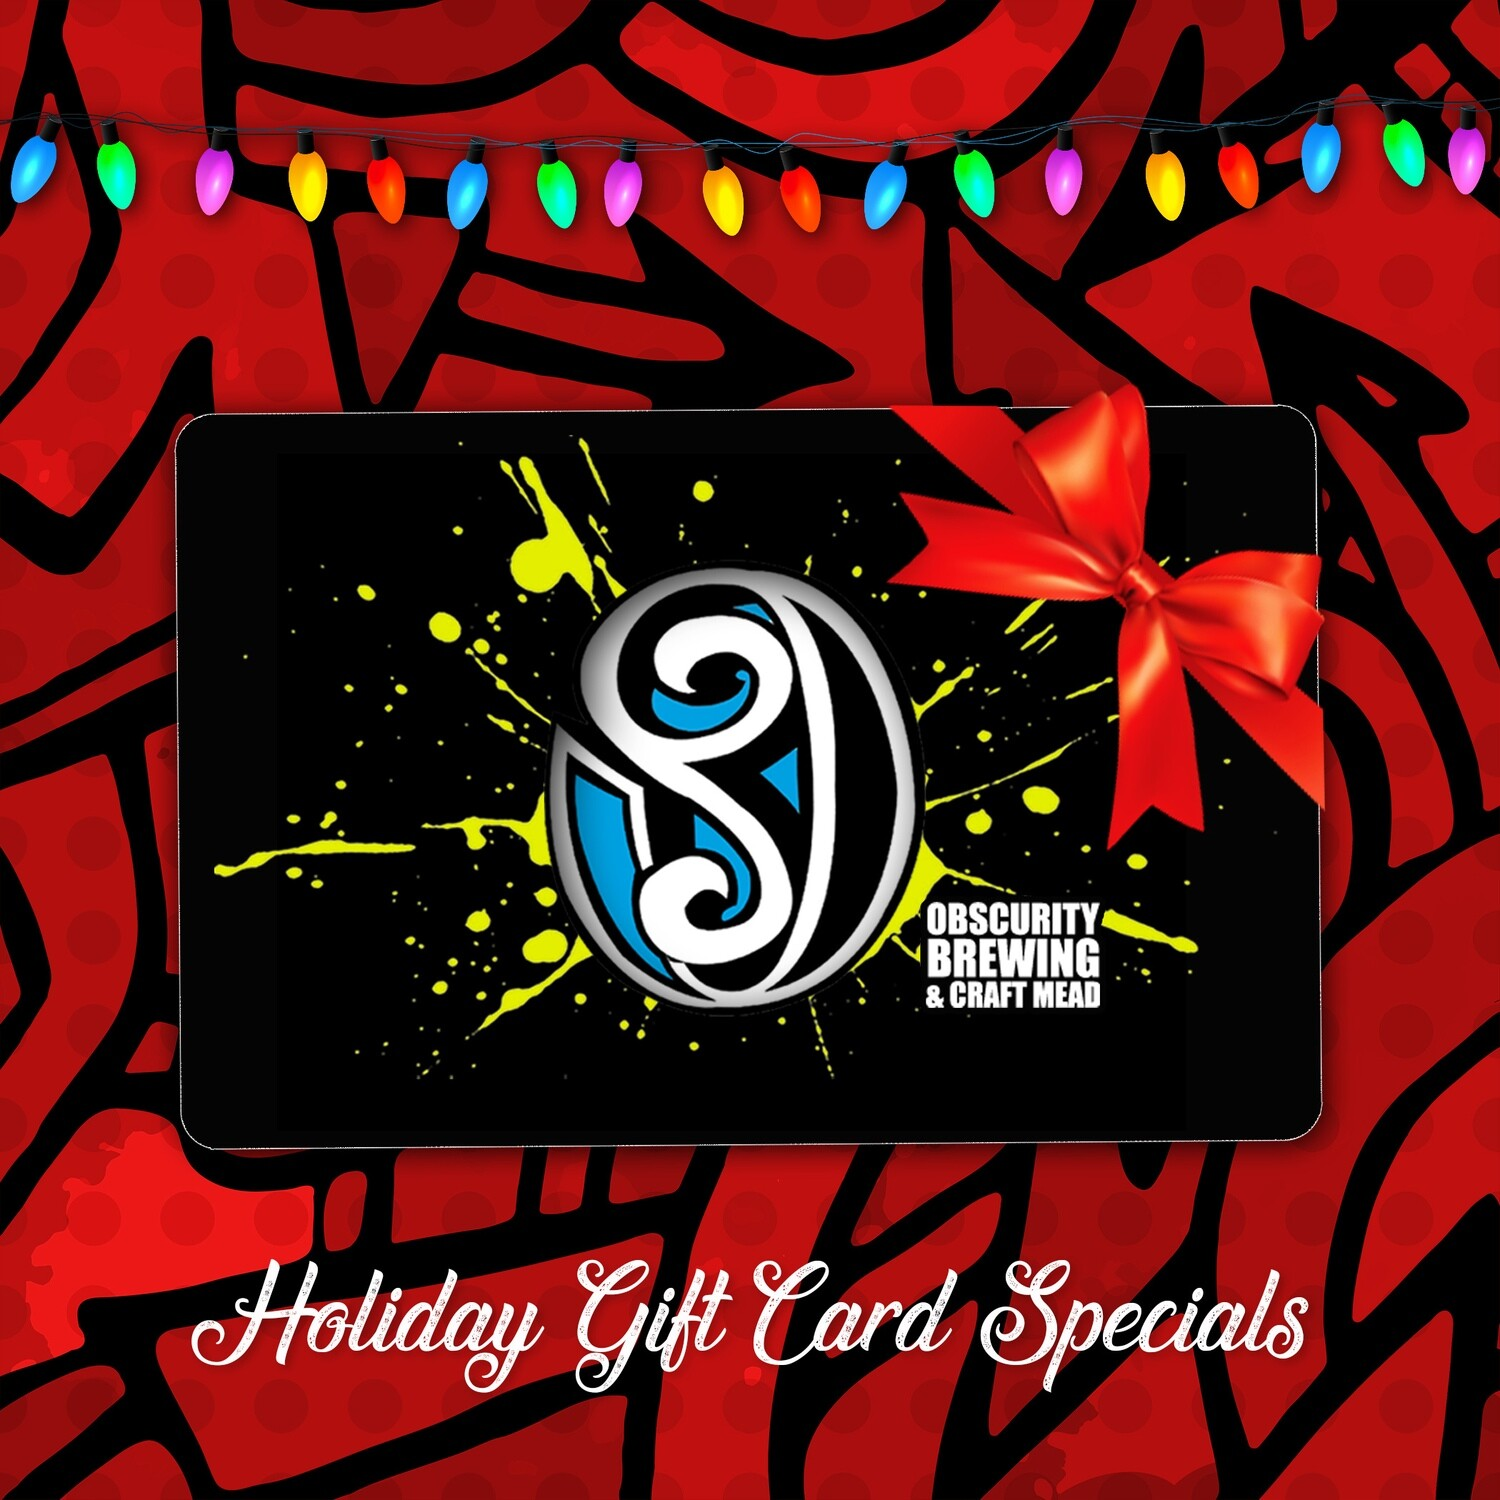 Obscurity Gift Card